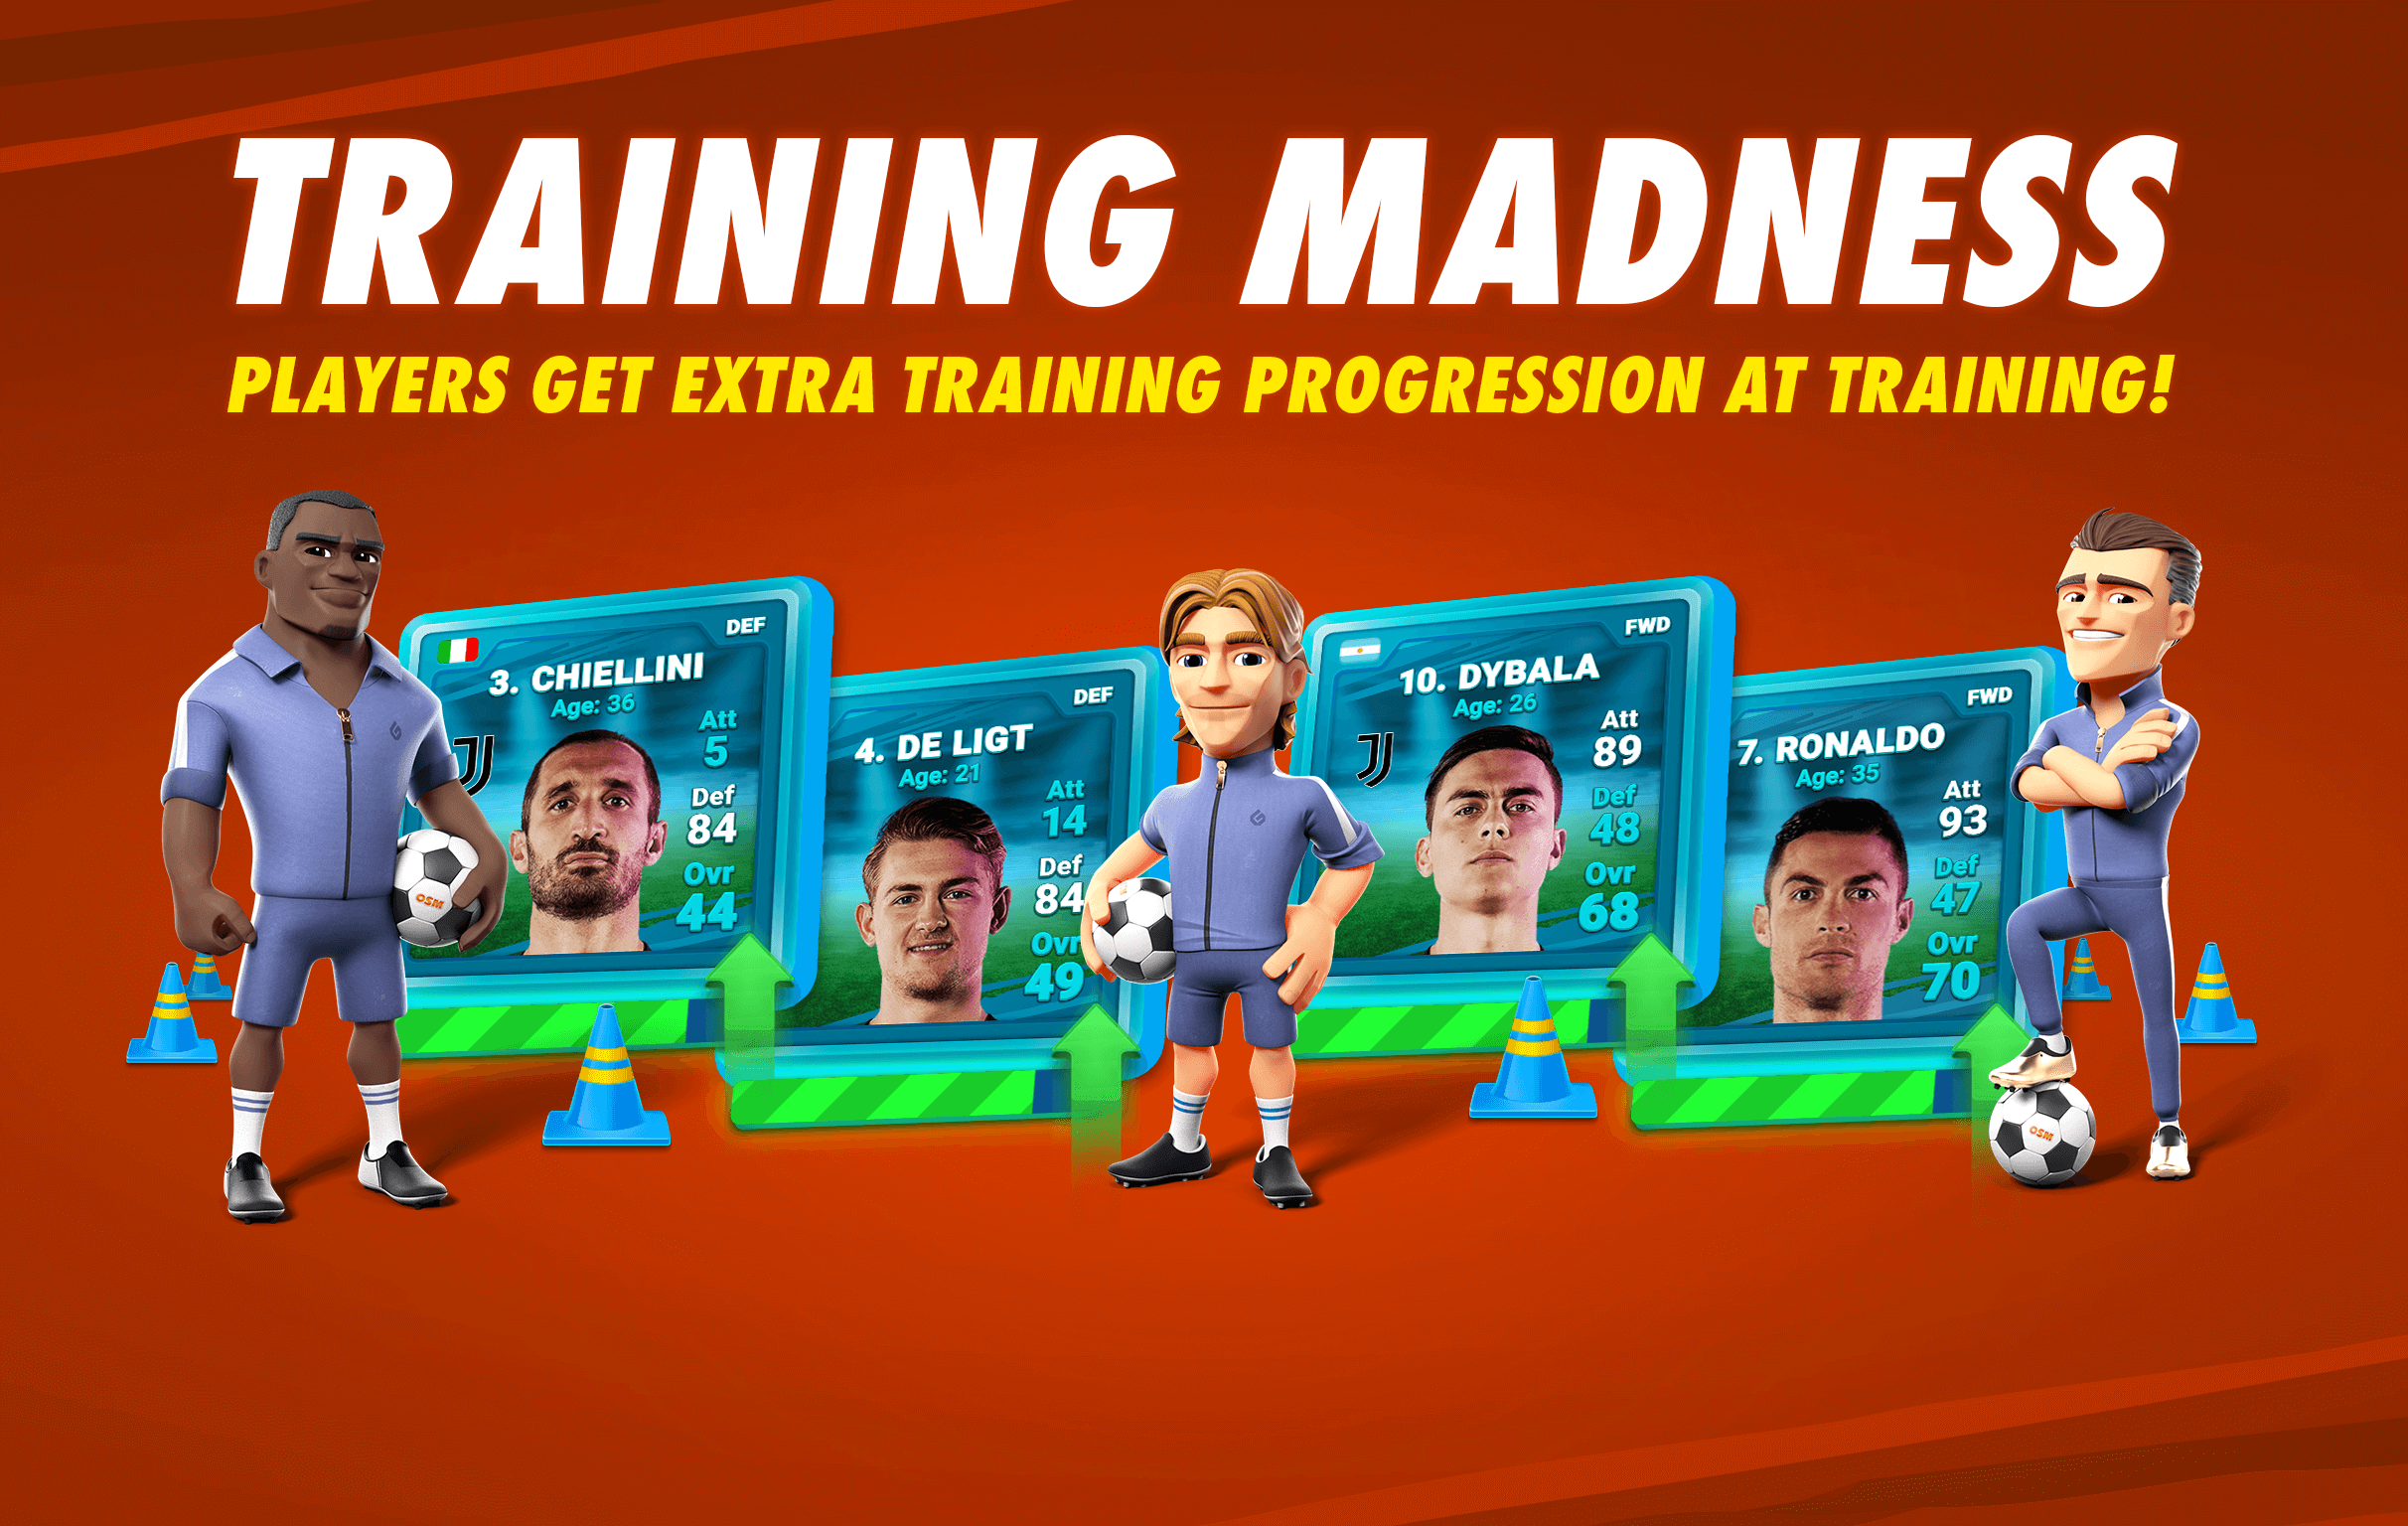 CP_Training Madness_EN.png